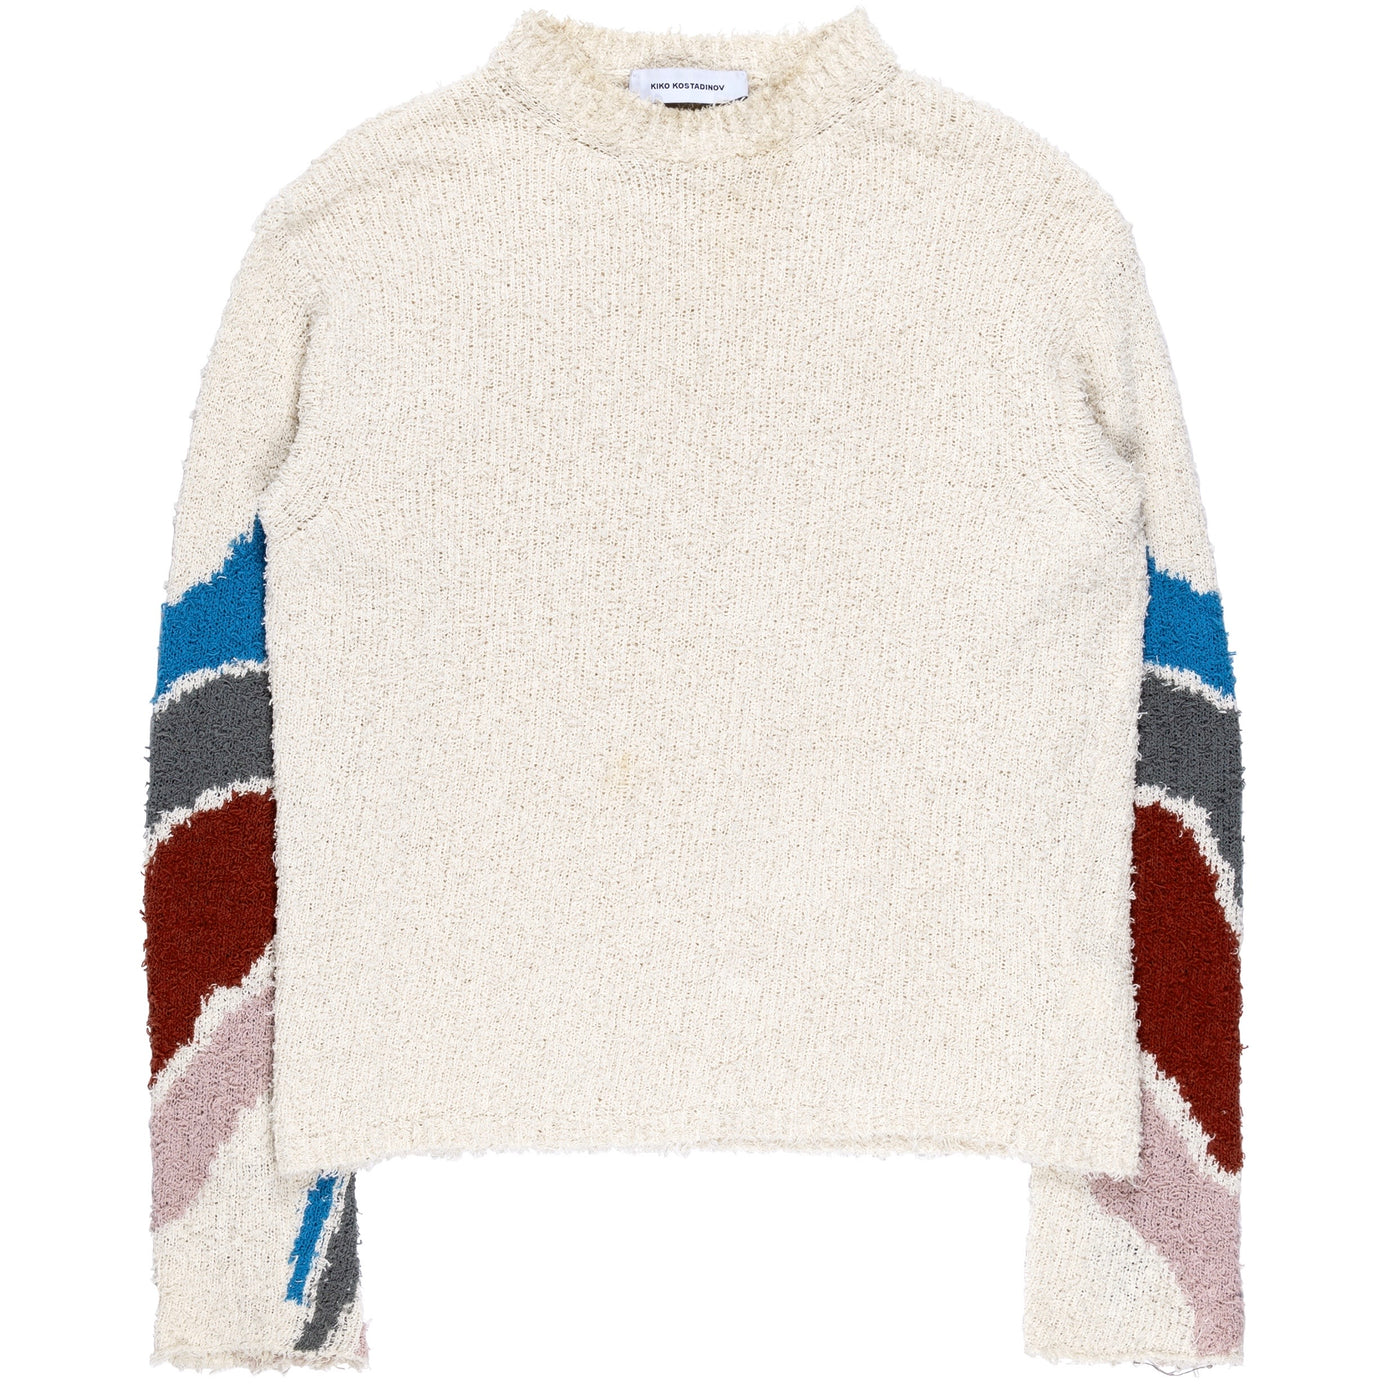 "Kiko Kostadinov Mohair Intarsia Knit Sweater - AW18 ""Obscured By Clouds"""